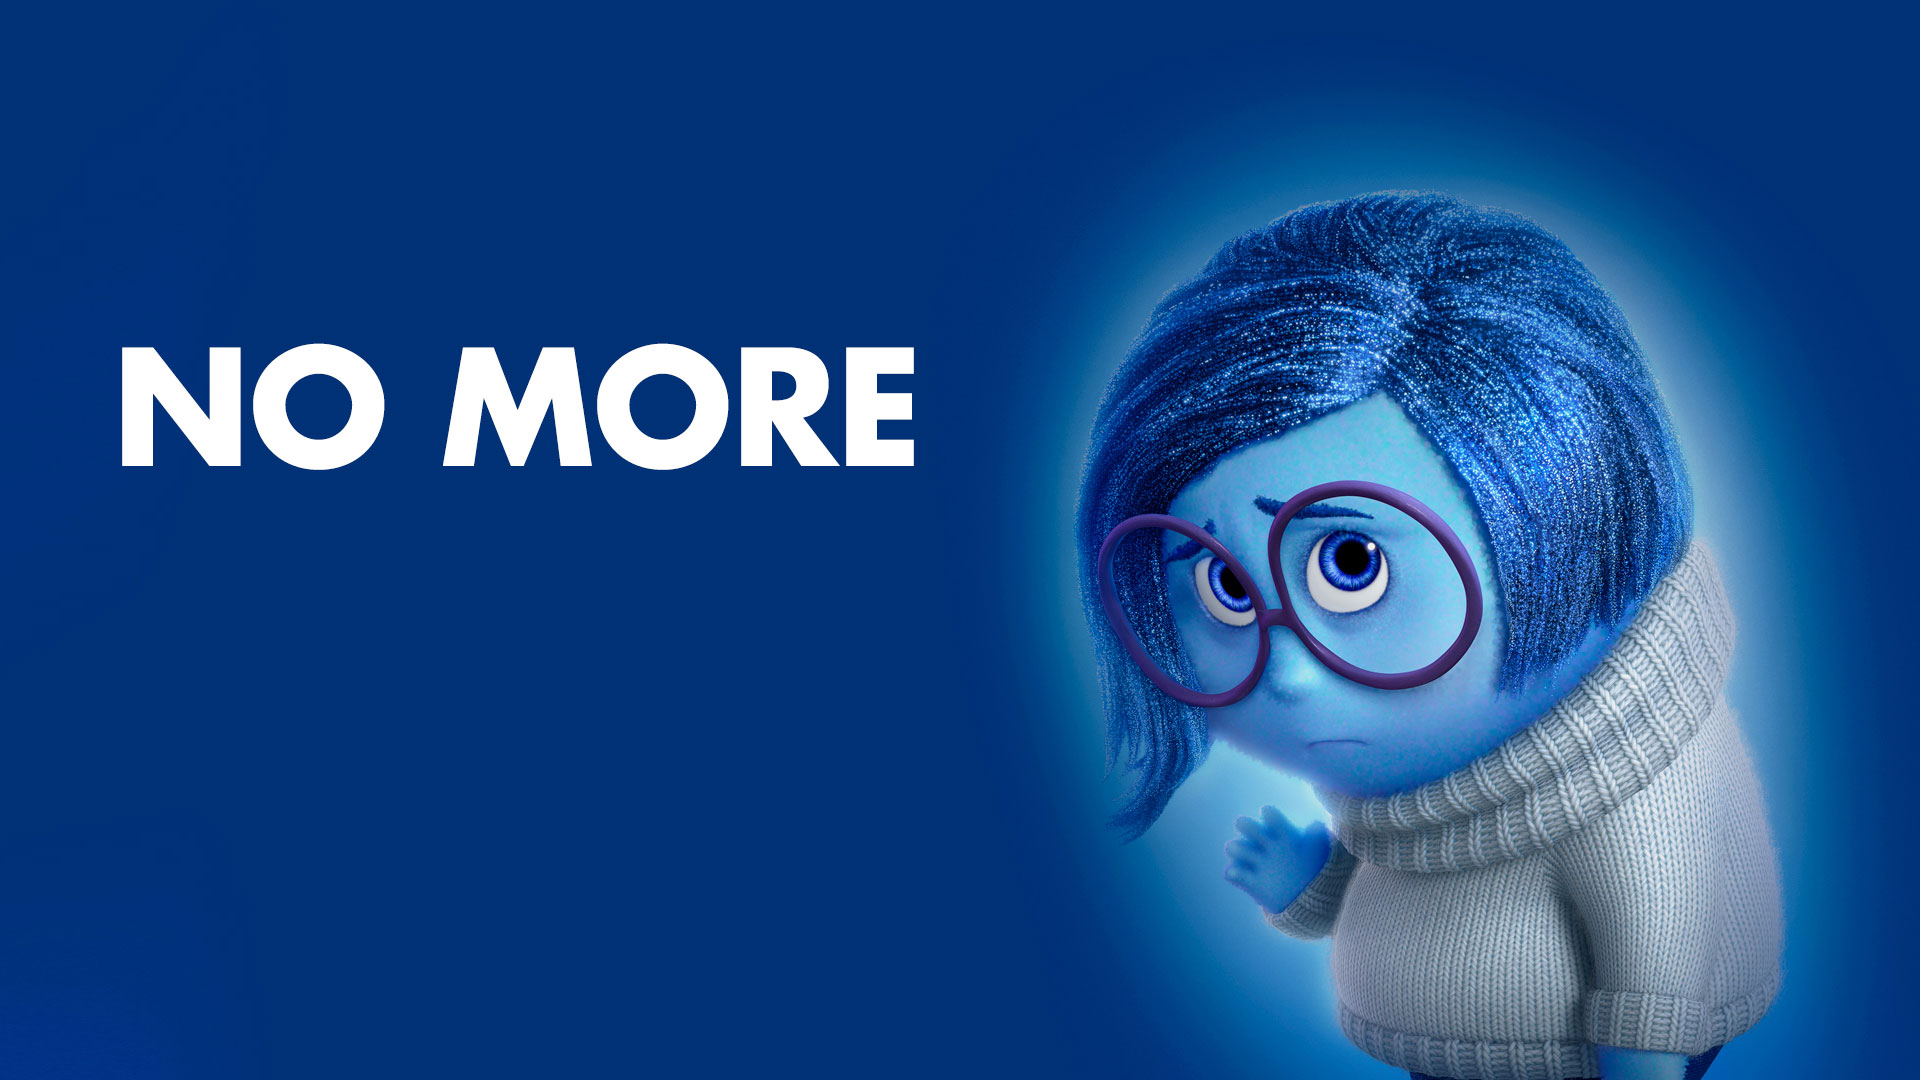 Heart Breaking Quotes Wallpapers Disney Movie Inside Out 2015 Desktop Backgrounds Amp Iphone